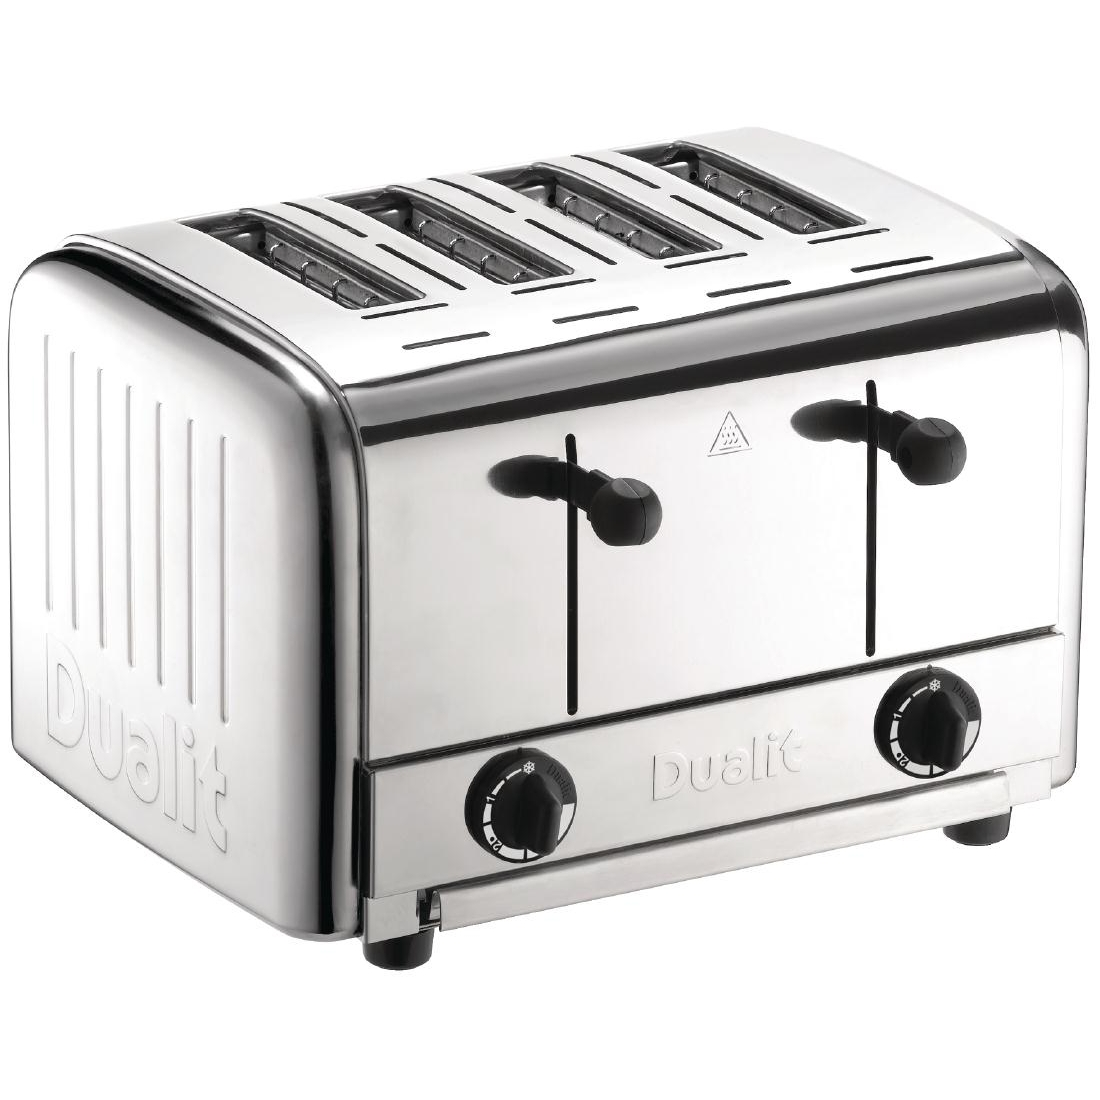 dualit pop slice up toasters toaster superb caterers com pnintelligentdialogue x